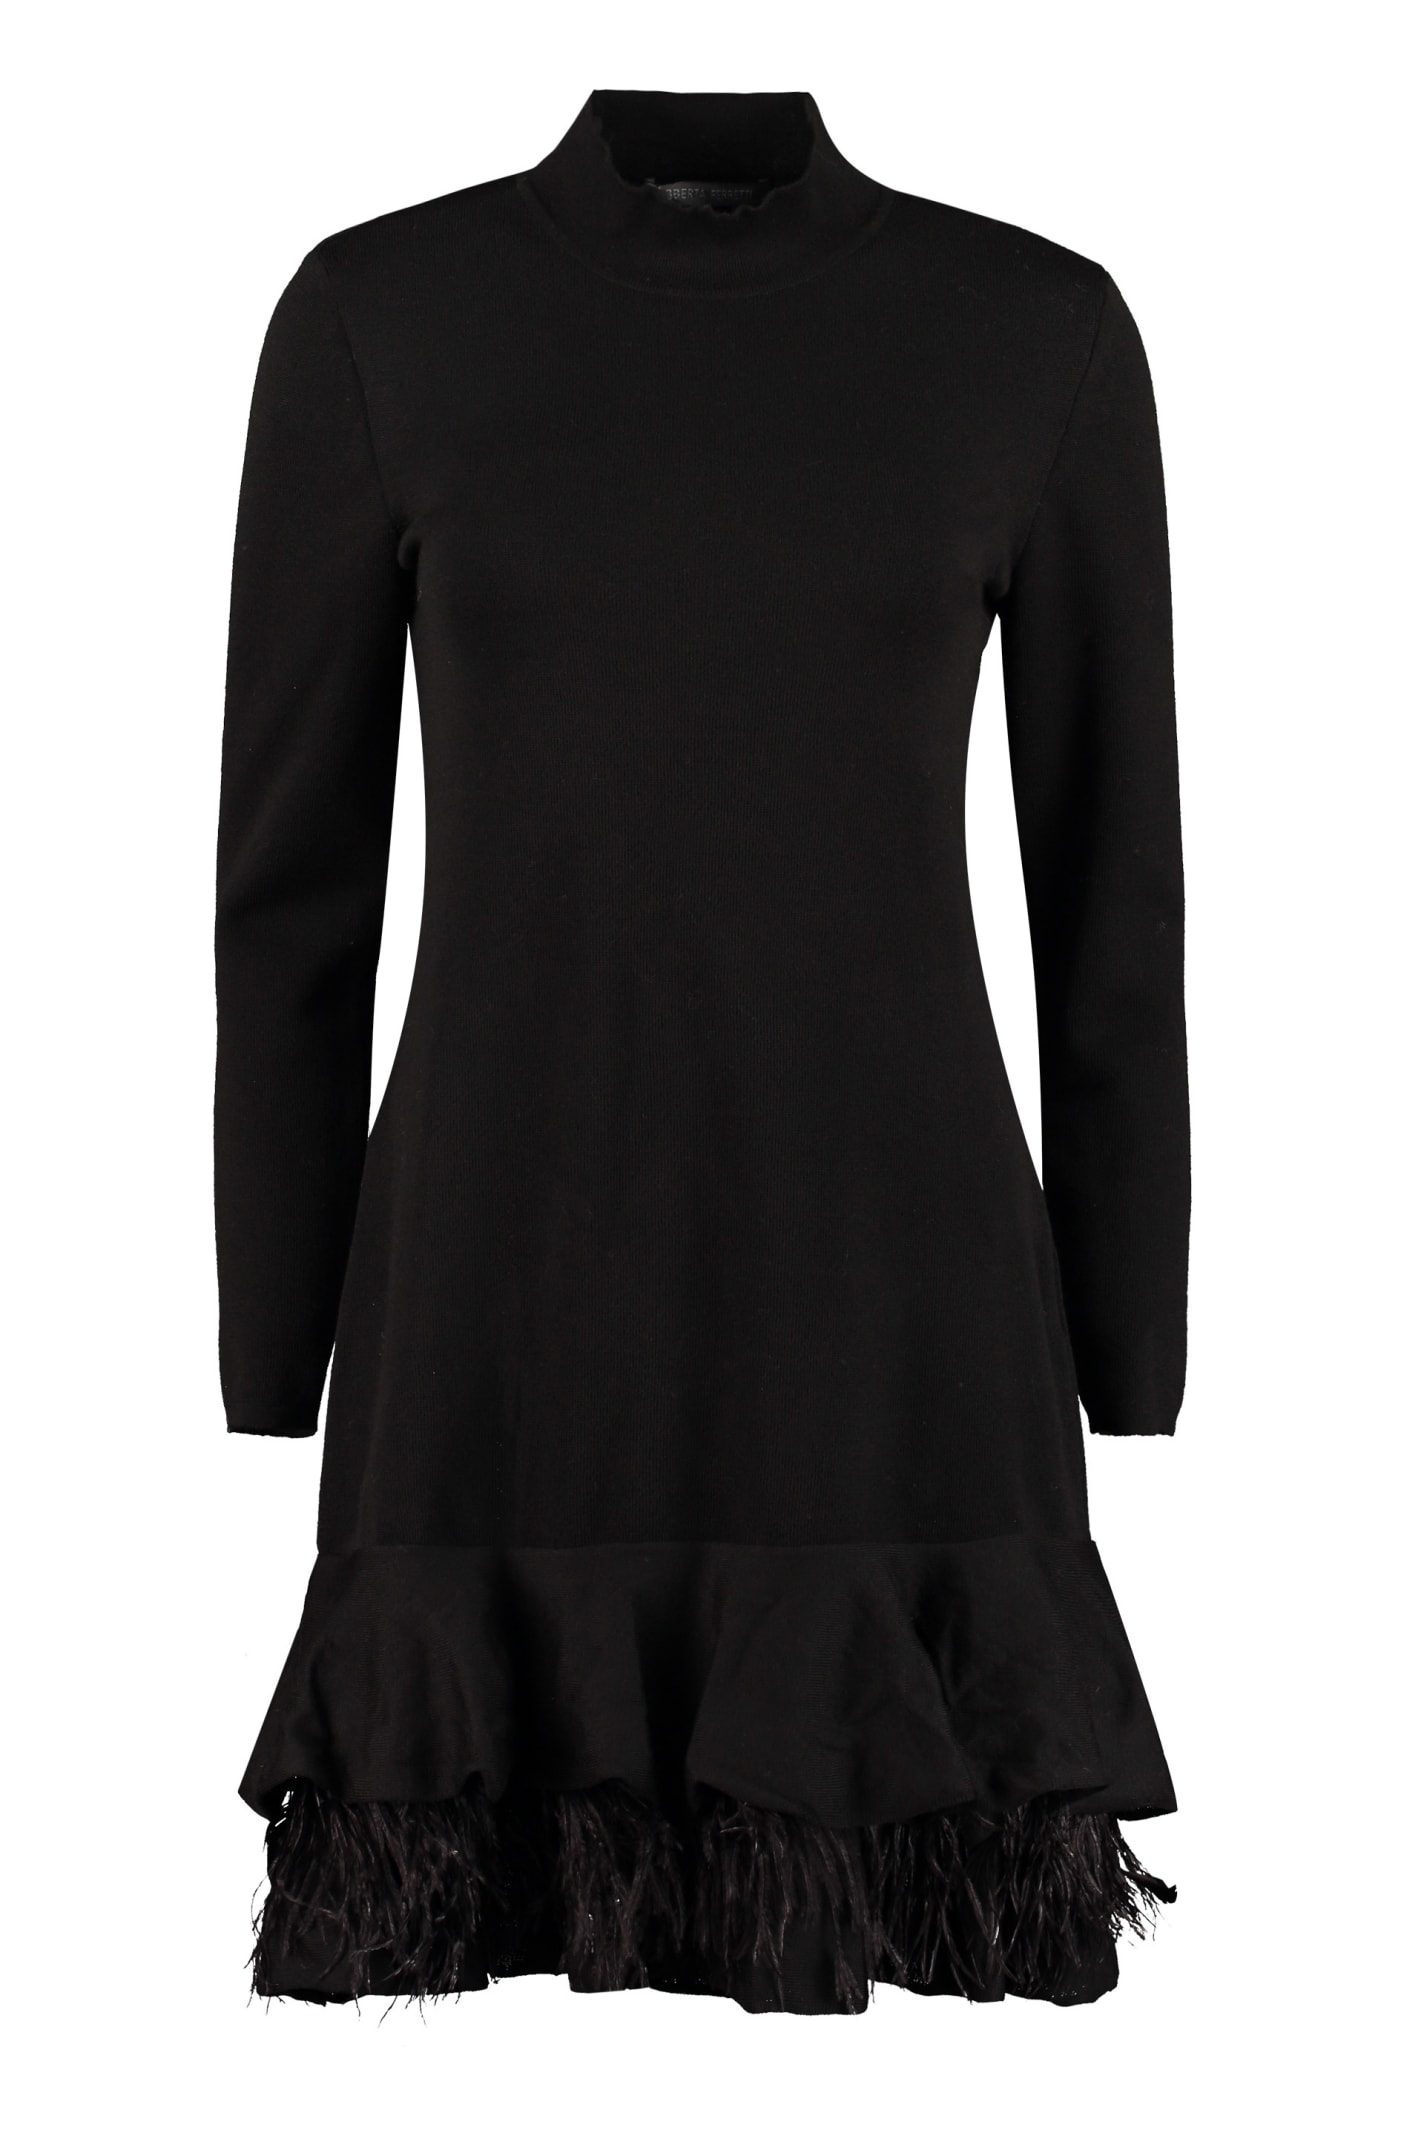 Alberta Ferretti Knitted Mini-dress